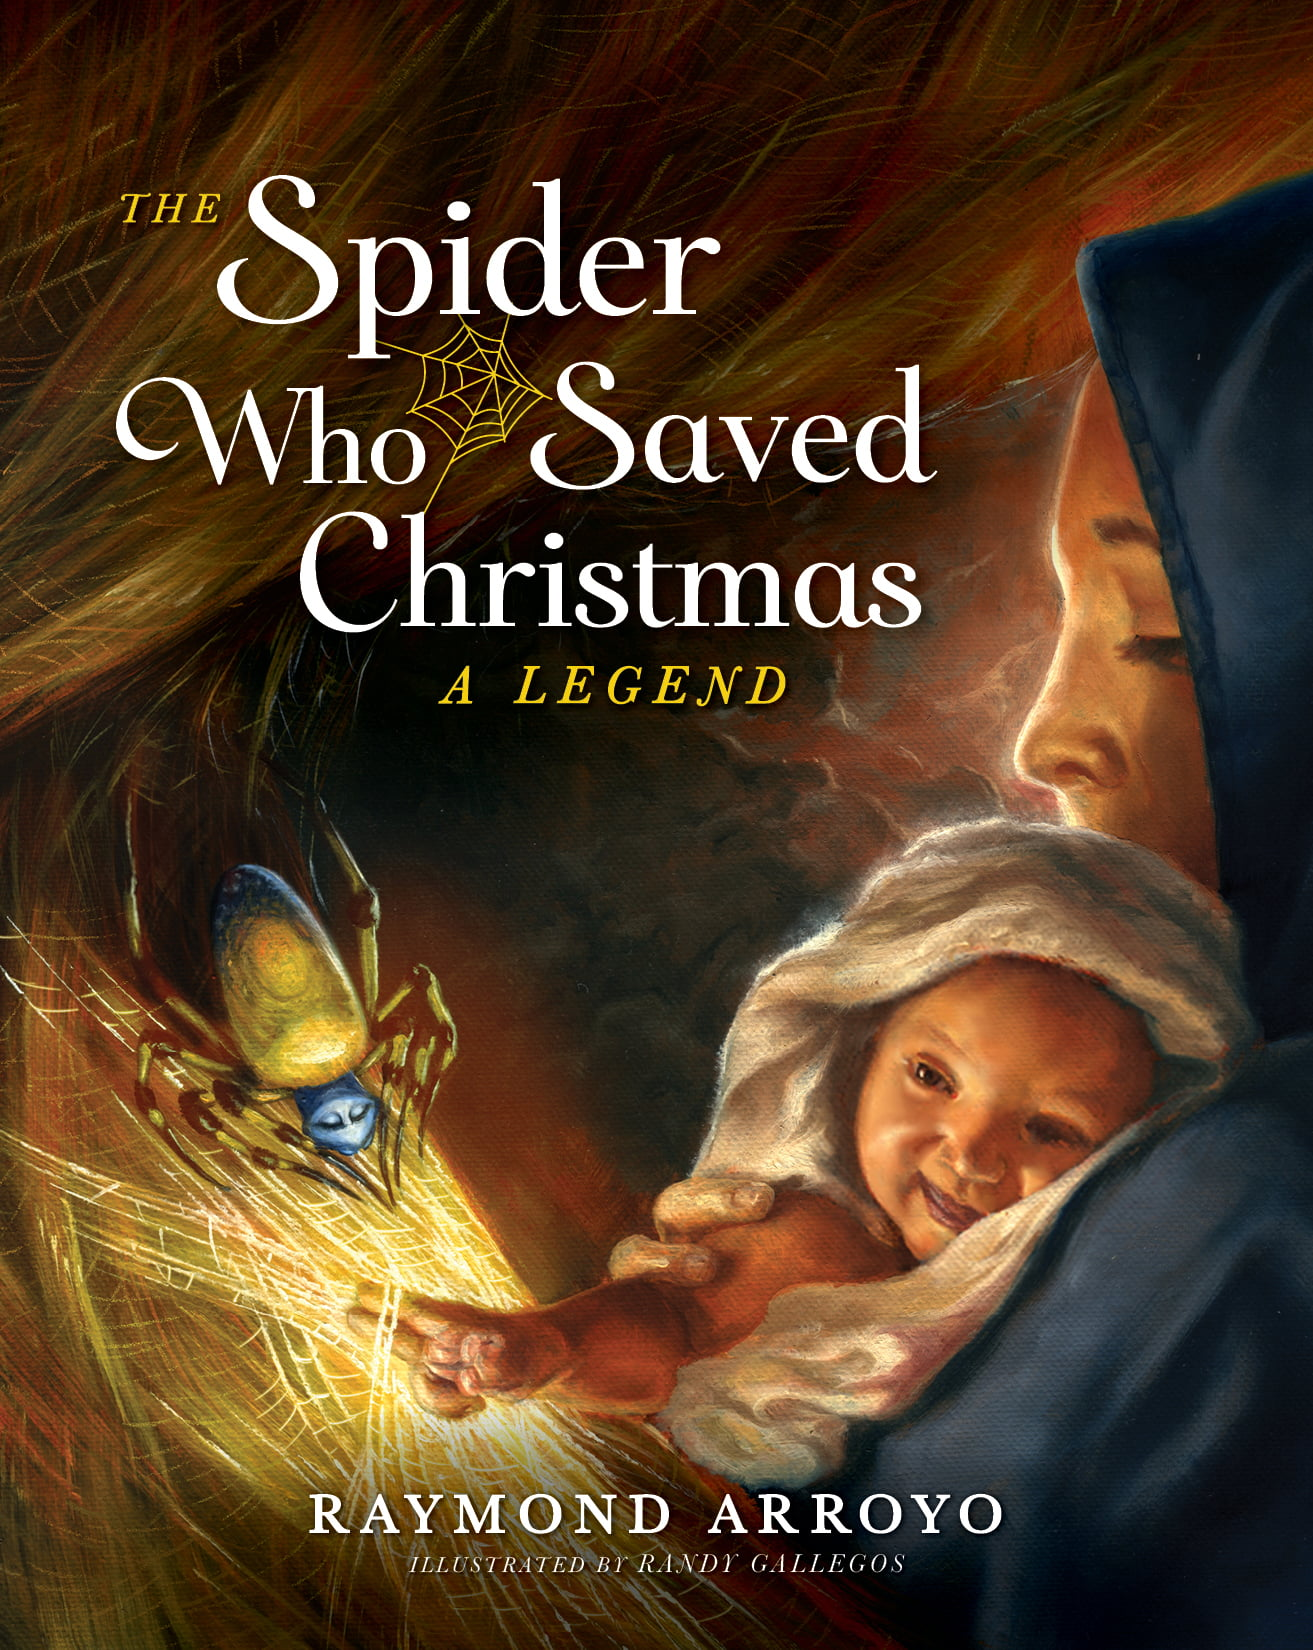 THE SPIDER WHO SAVED CHRISTMAS Rekindles Ancient Legend and Origins of Tinsel, Offering Instant Classic to Be Released in Time for the Holidays